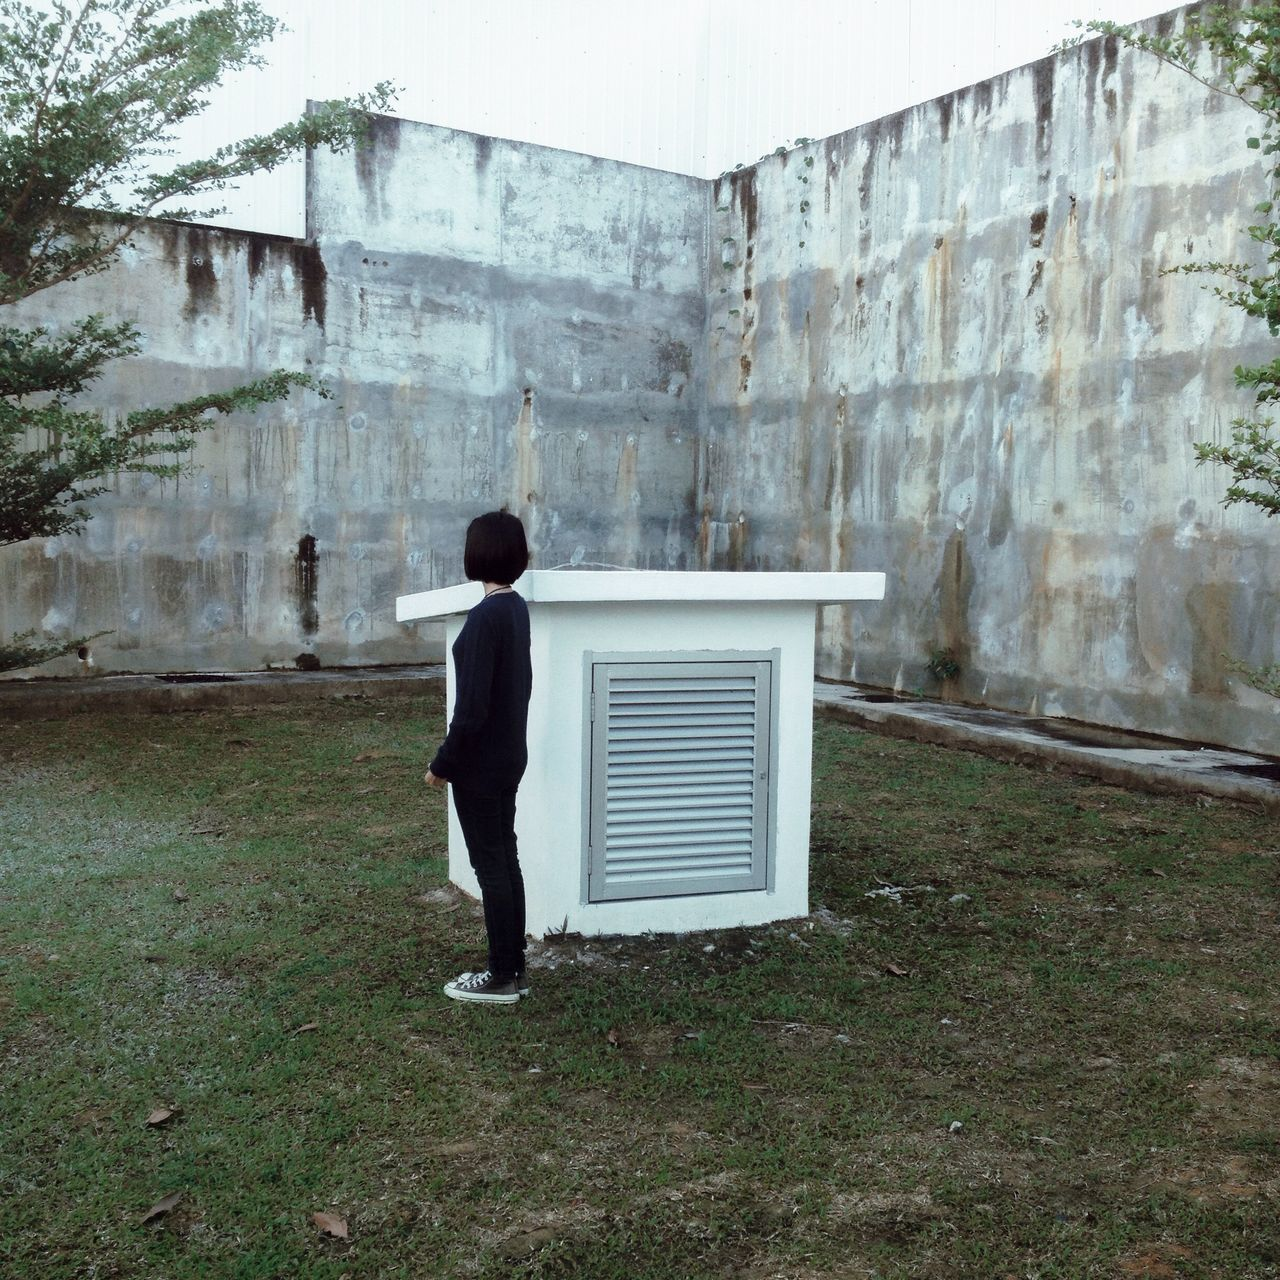 Full length side view of woman standing on field by vent